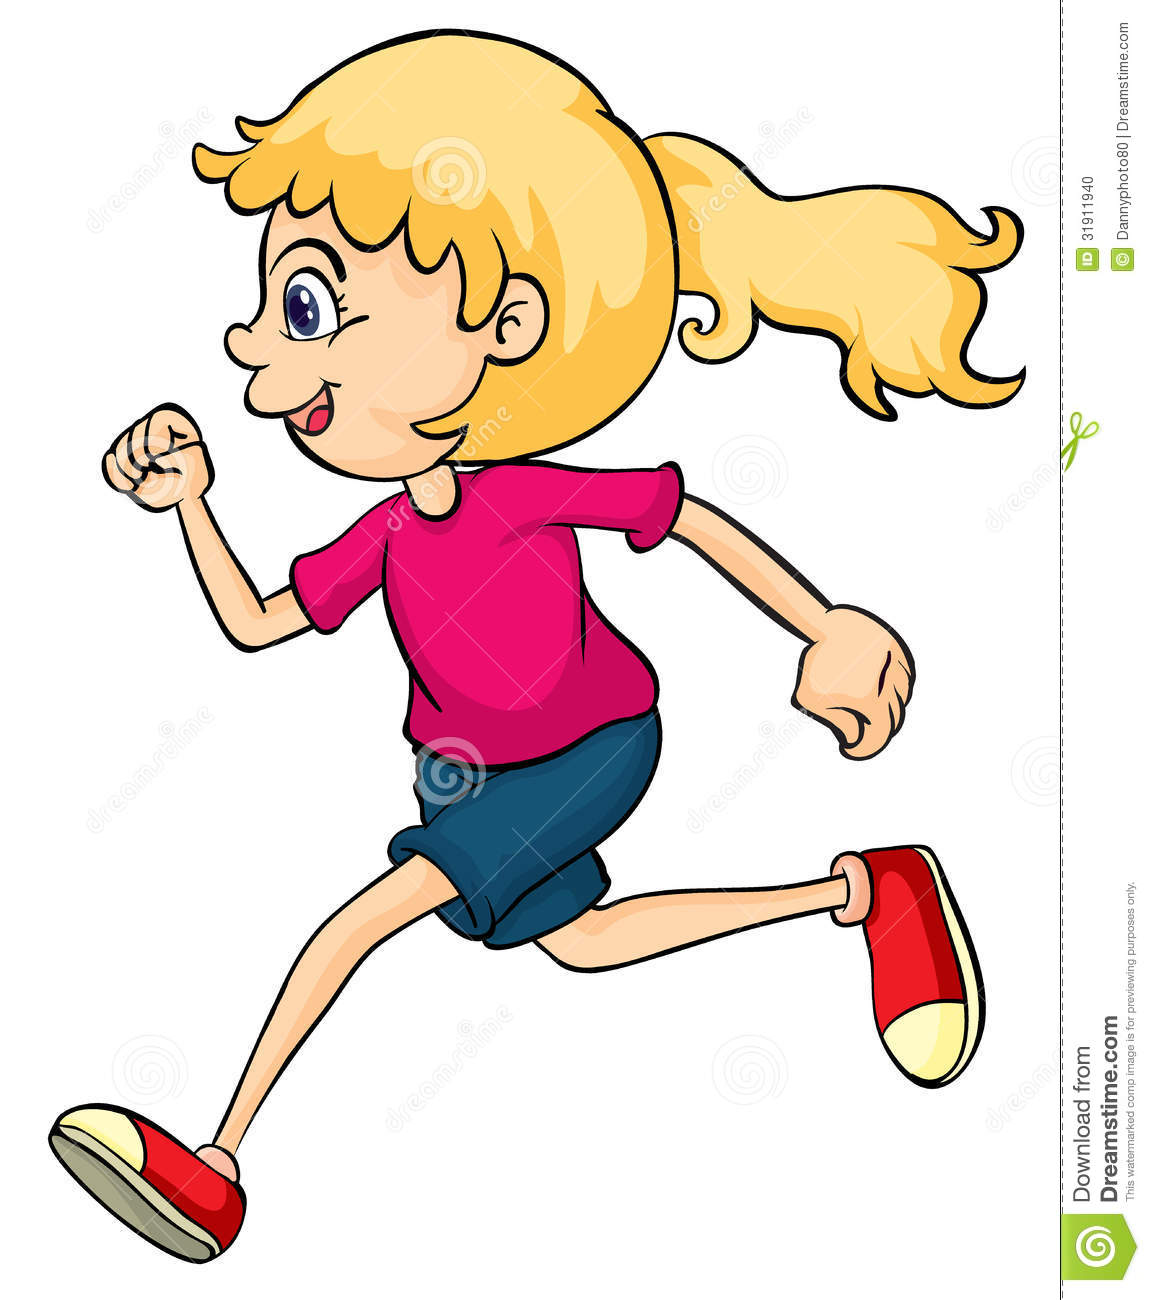 99+ Girl Running Clipart | ClipartLook vector free library